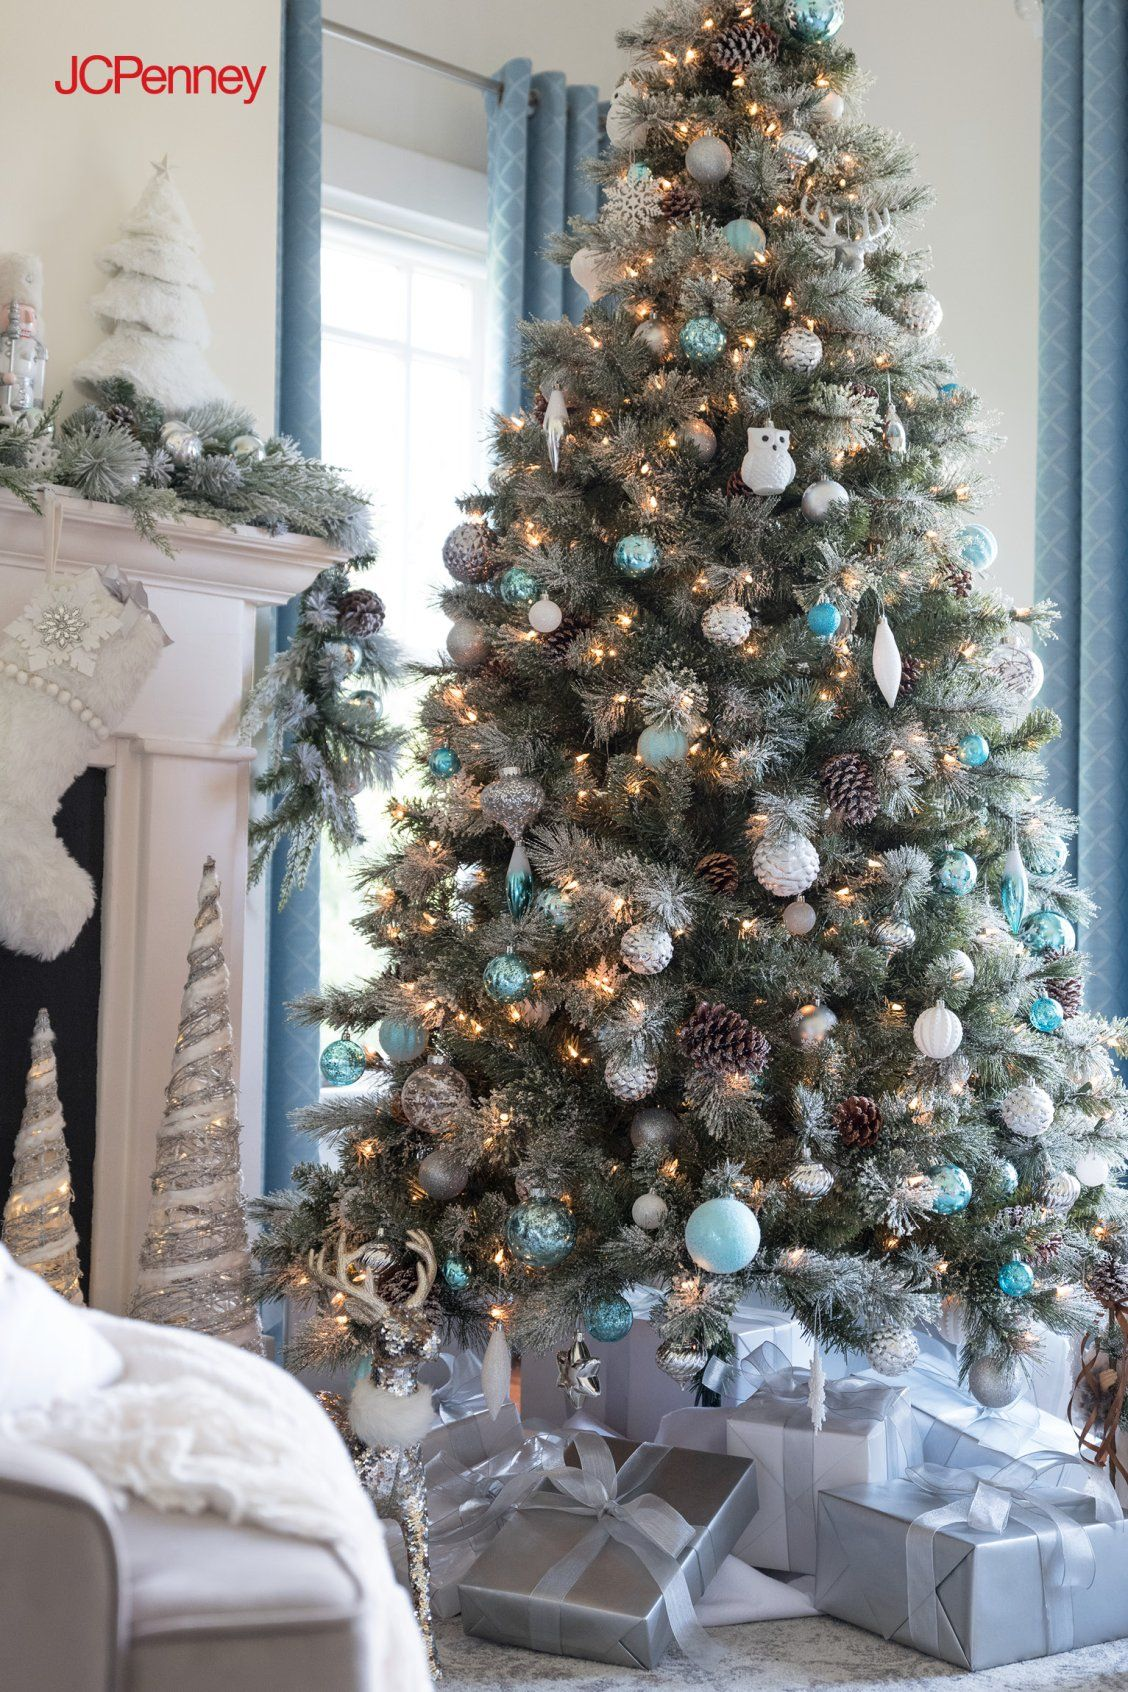 Jcpenney Christmas Hours 2020 Transform your home into a winter wonderland with perfectly